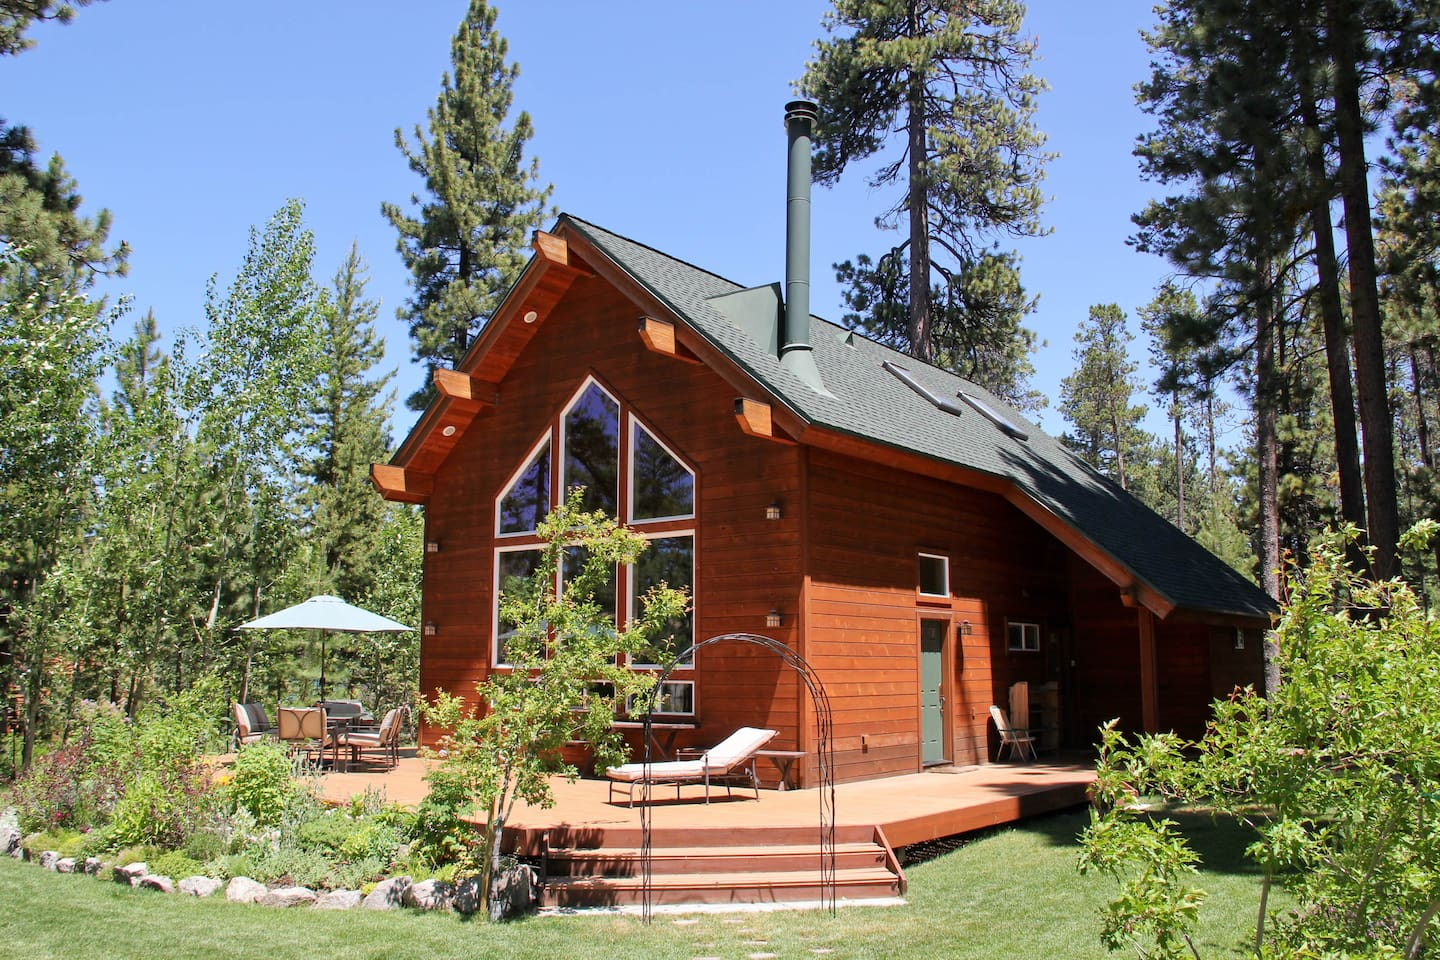 #1152BA  Tahoe Cabin/Private Beach Cabins For Rent In South Lake Tahoe with 1440x960 px of Most Effective Lake Tahoe Log Cabin 9601440 wallpaper @ avoidforclosure.info